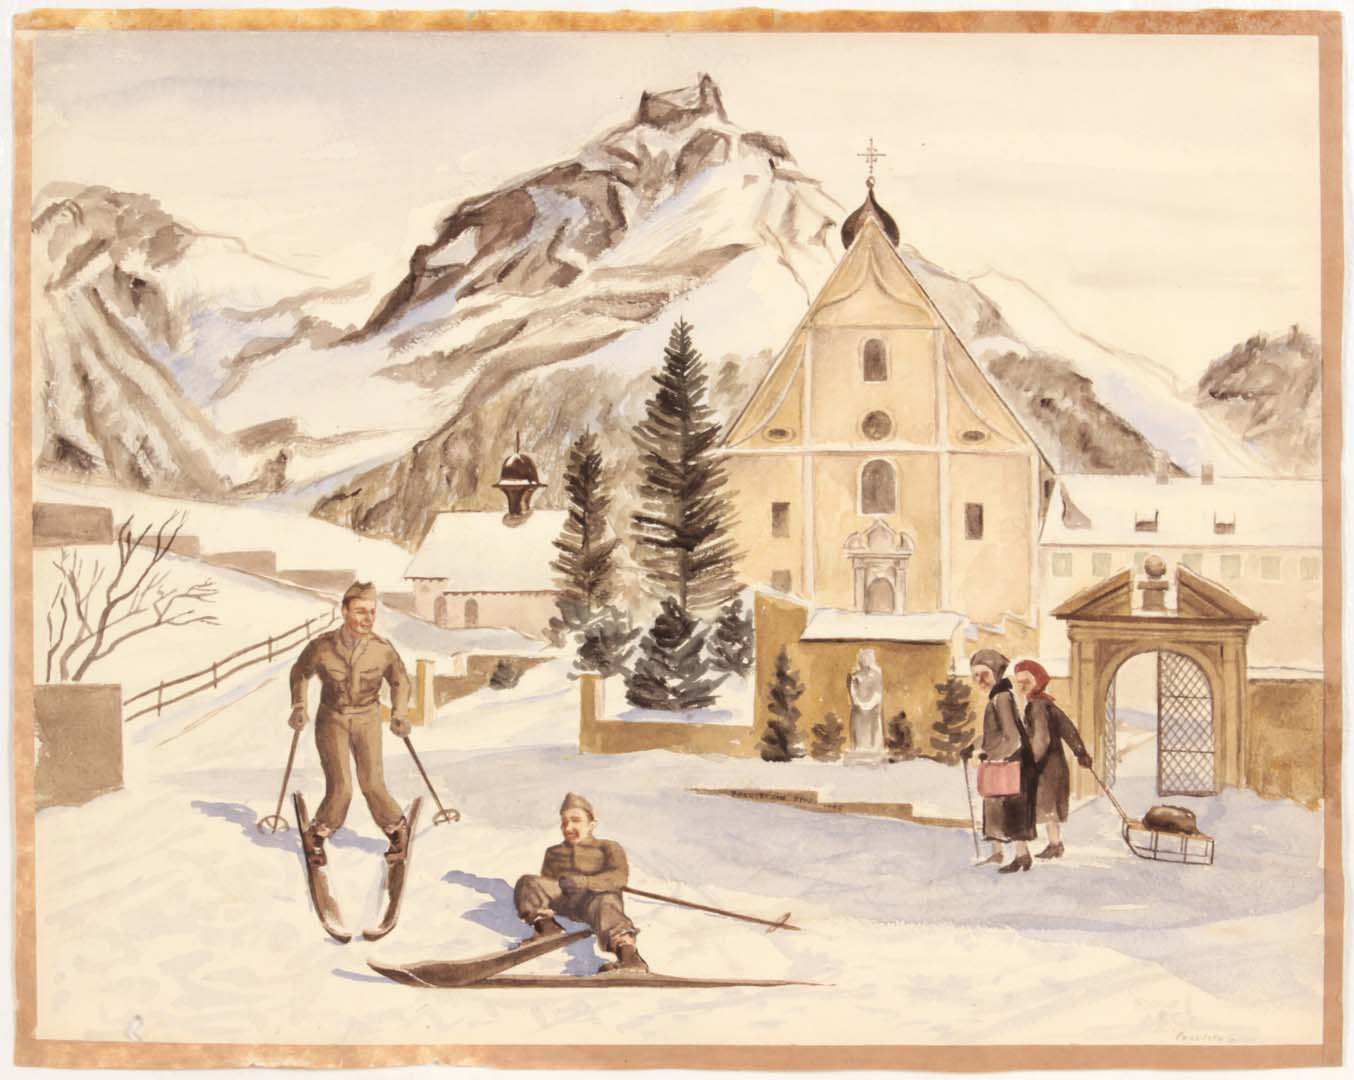 1946 Alpine Village (Switzerland Soldiers Skiing) Watercolor on Paper 15.1875 x 19